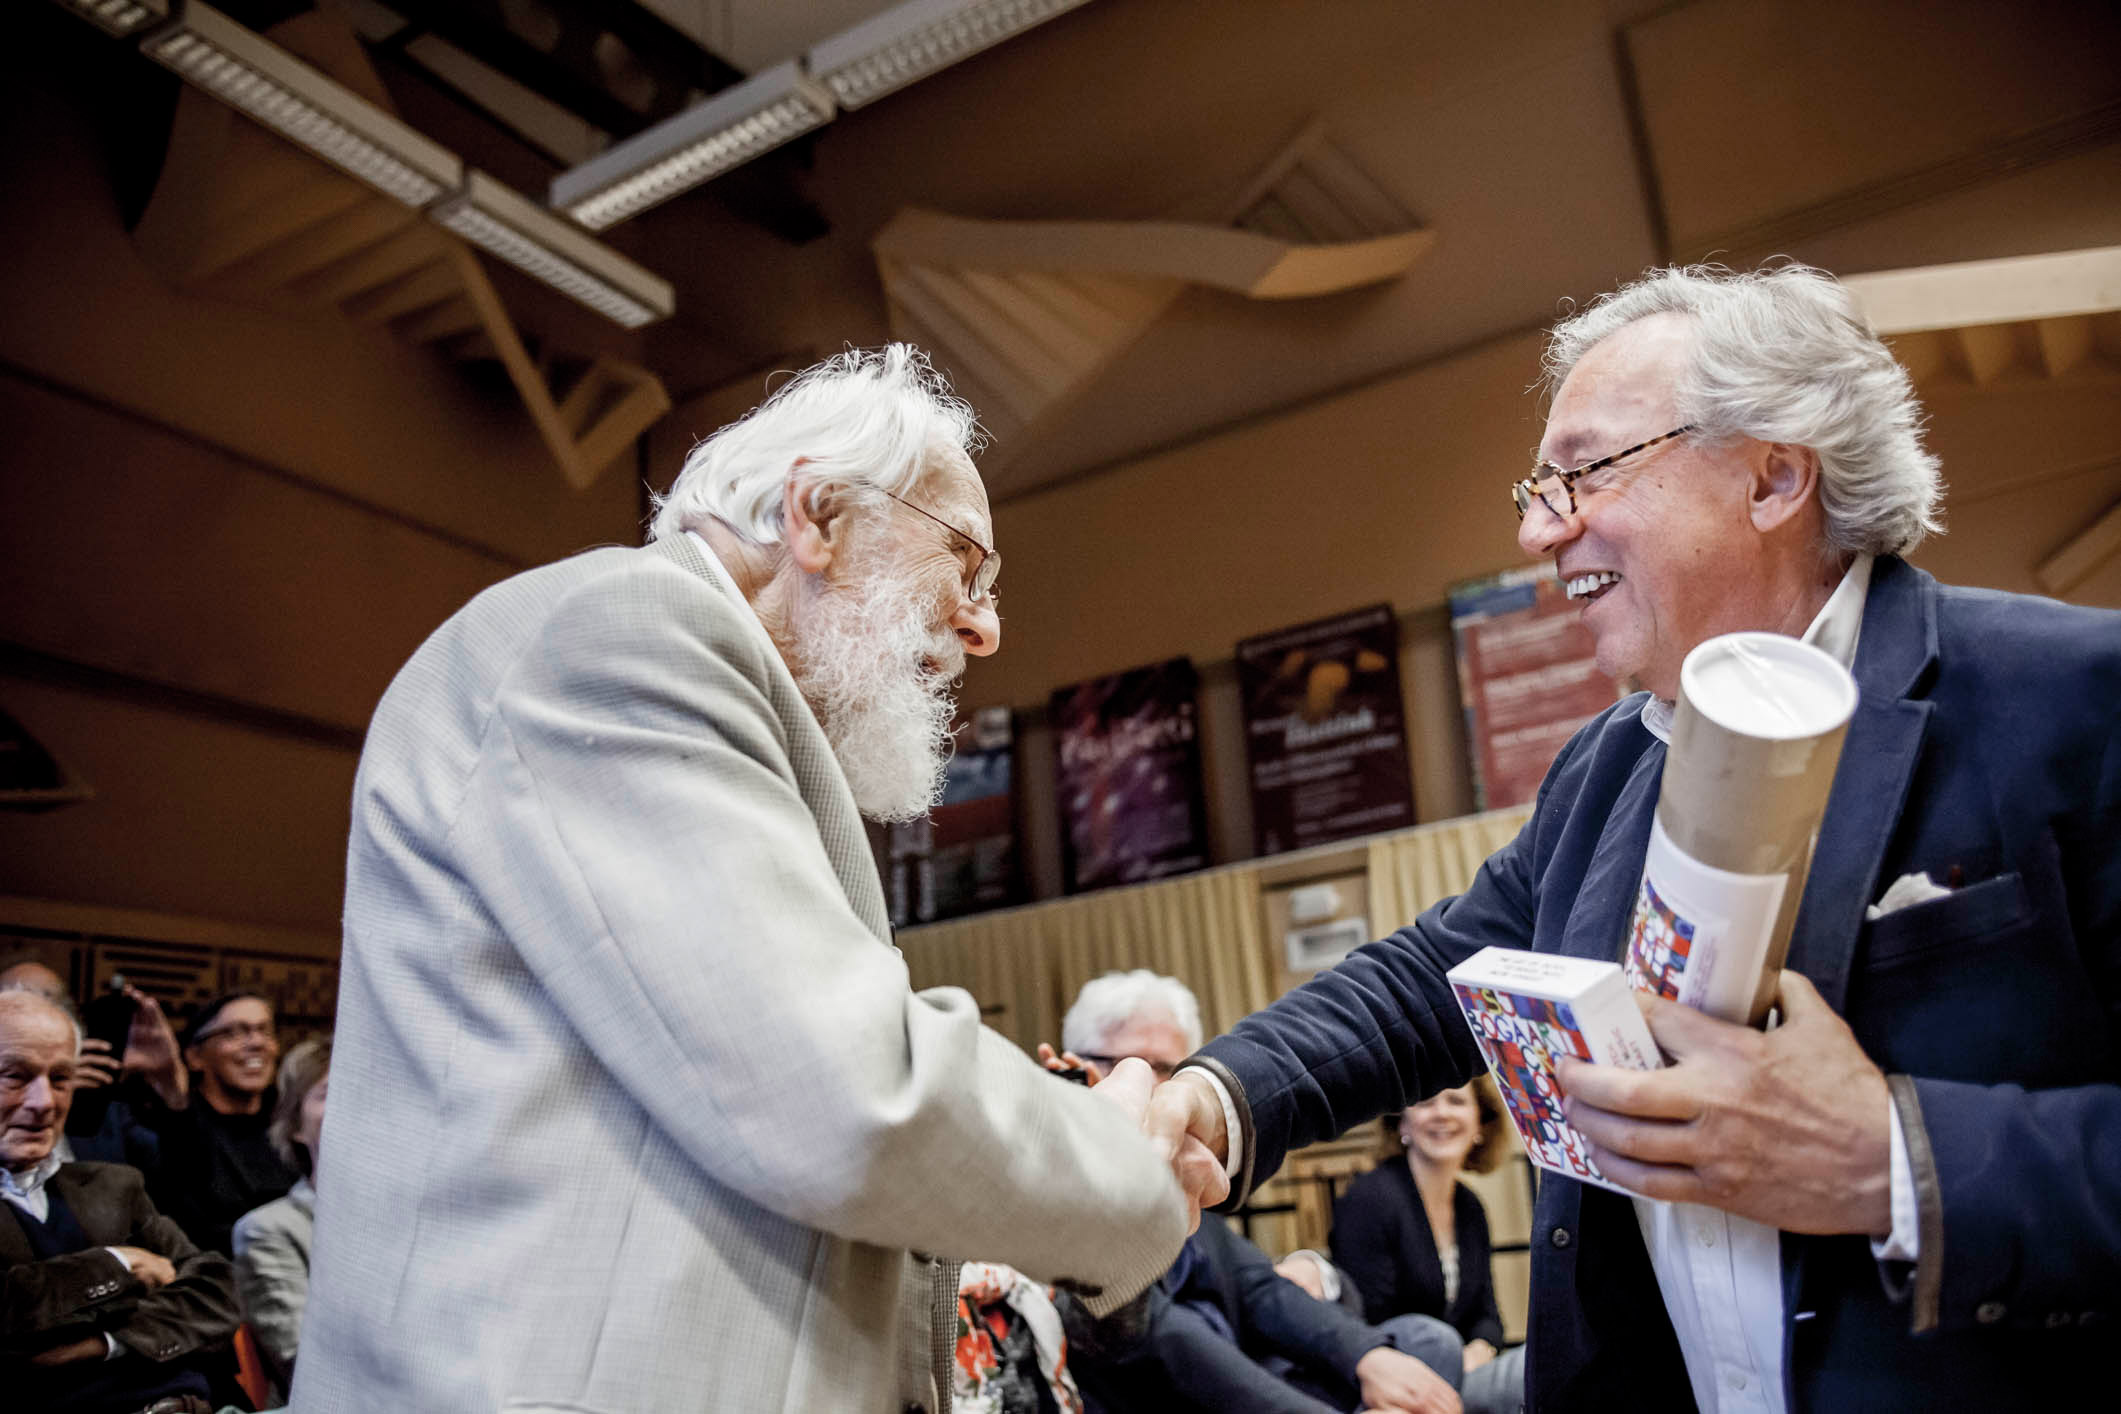 The first copy of 'The Art of Dutch Keyboard Music' is handed over by Jacob Bogaart to Jan van Dijk, oldest living pupil of Willem Pijper in the MCO Hilversum, May 2015.